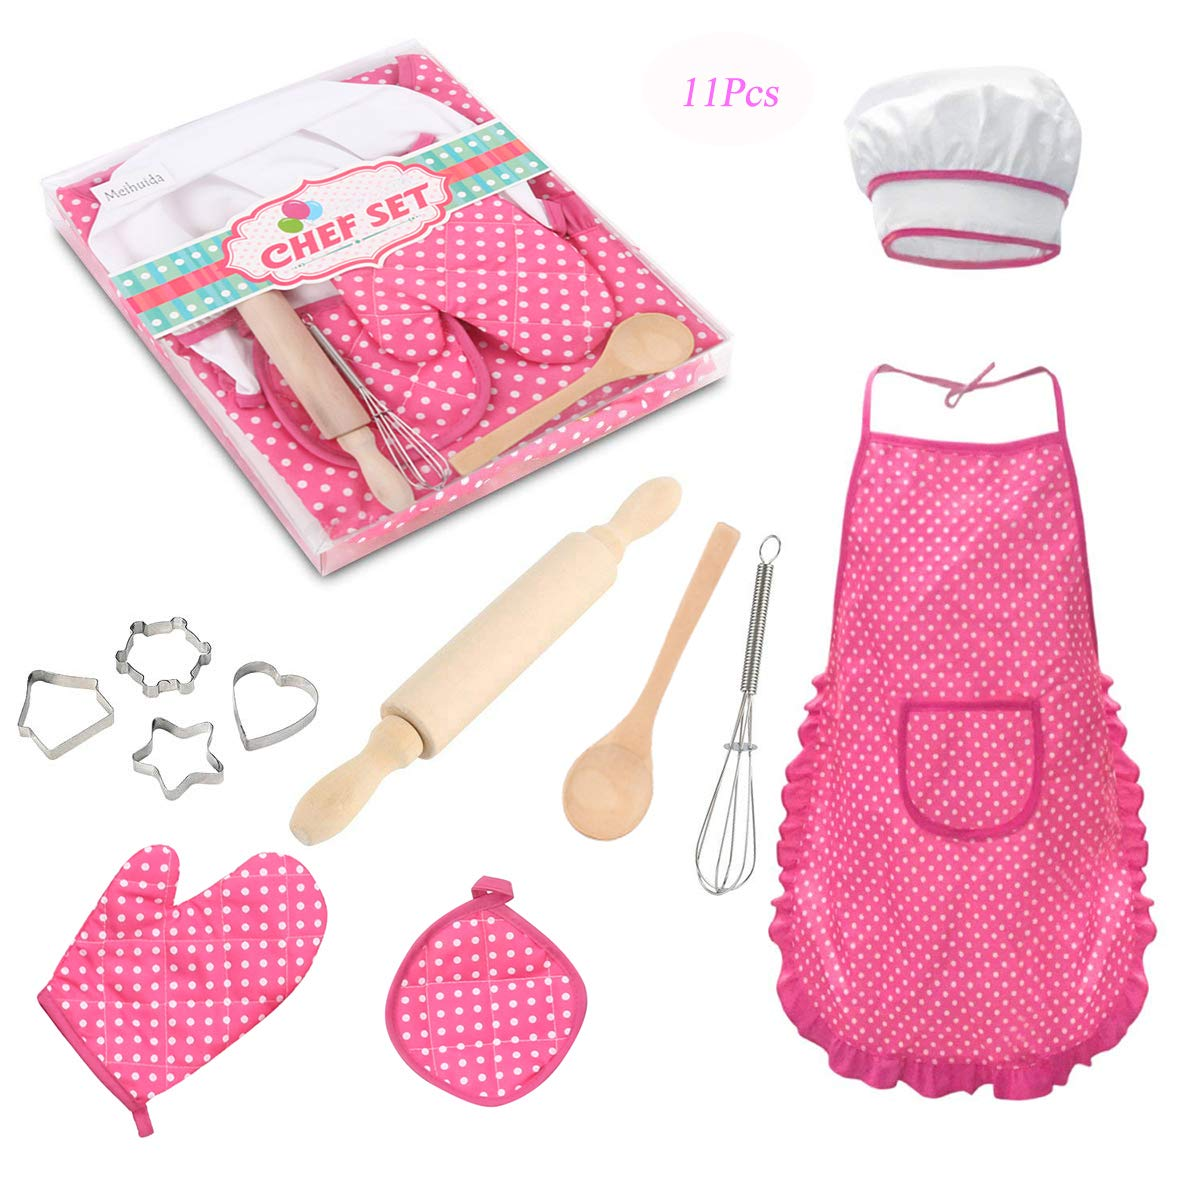 Meihuida Kids Chef Set for Girls, 11Pcs Cooking and Baking Set for Kids Toddler Dress up Pretend Play Kitchen Chef Costume Set with Apron, Chef Hat, Cooking Mitt and Cookie Cutters (Pink)